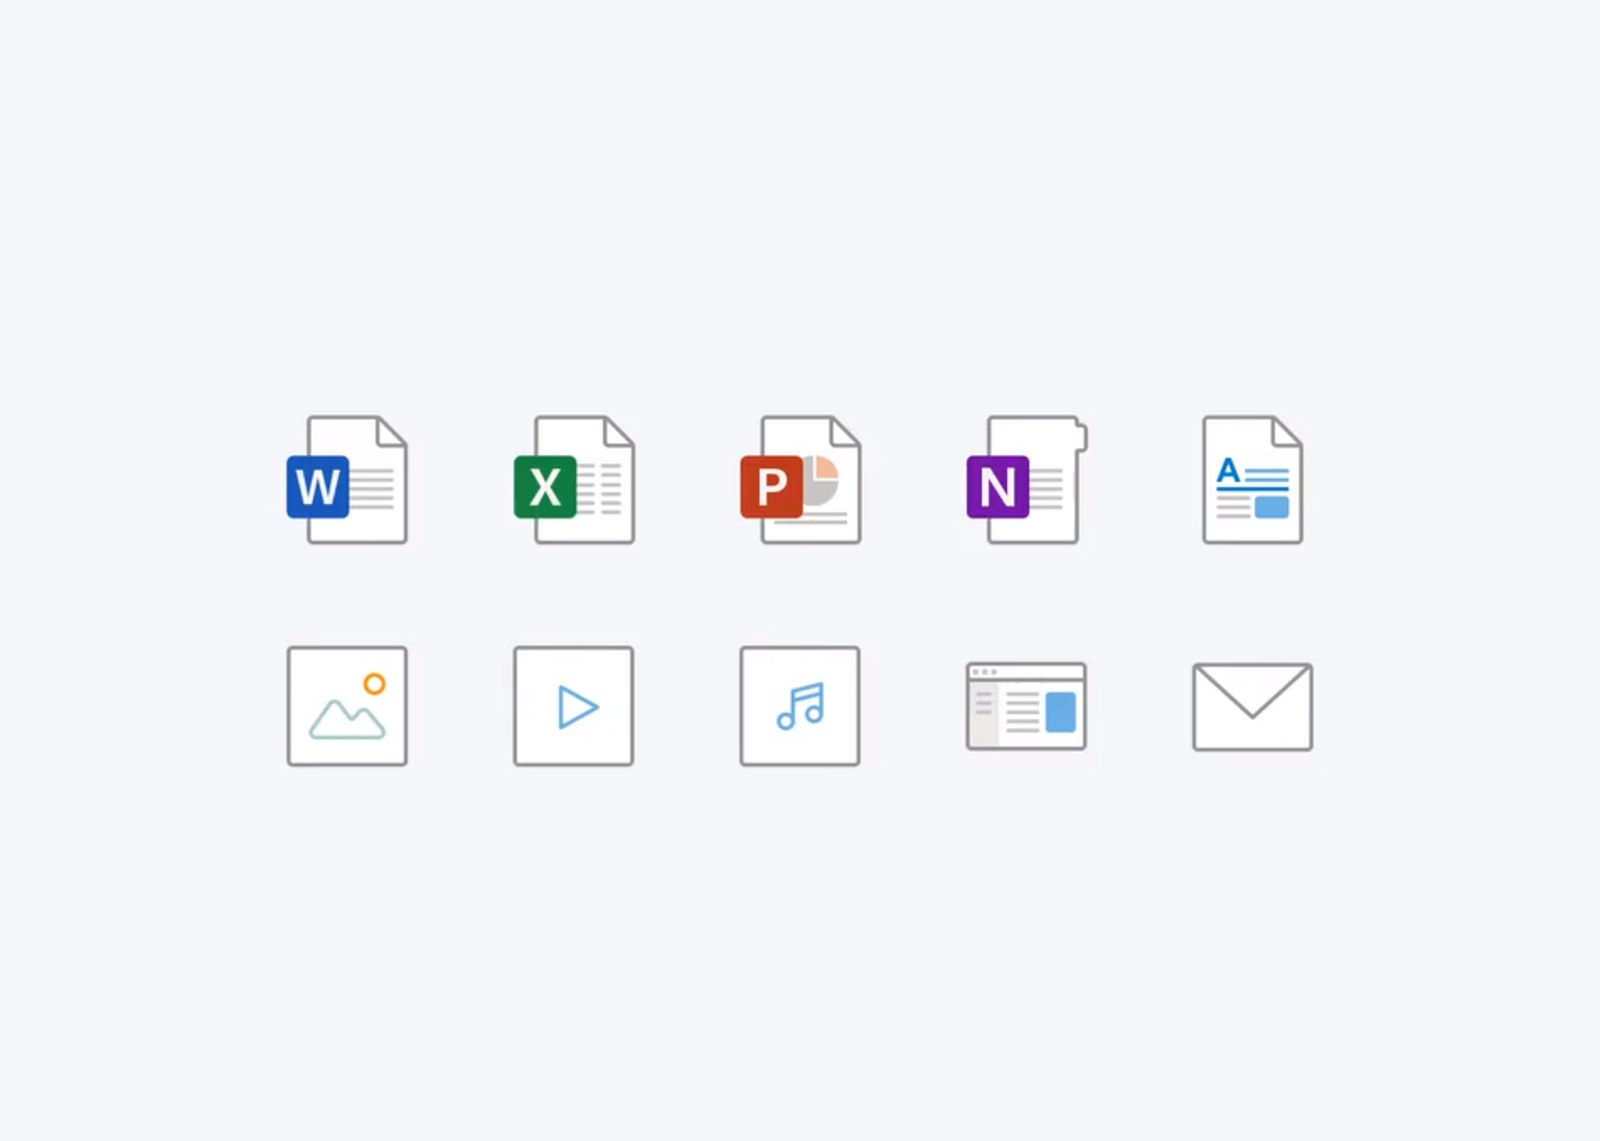 New Office filetype icons